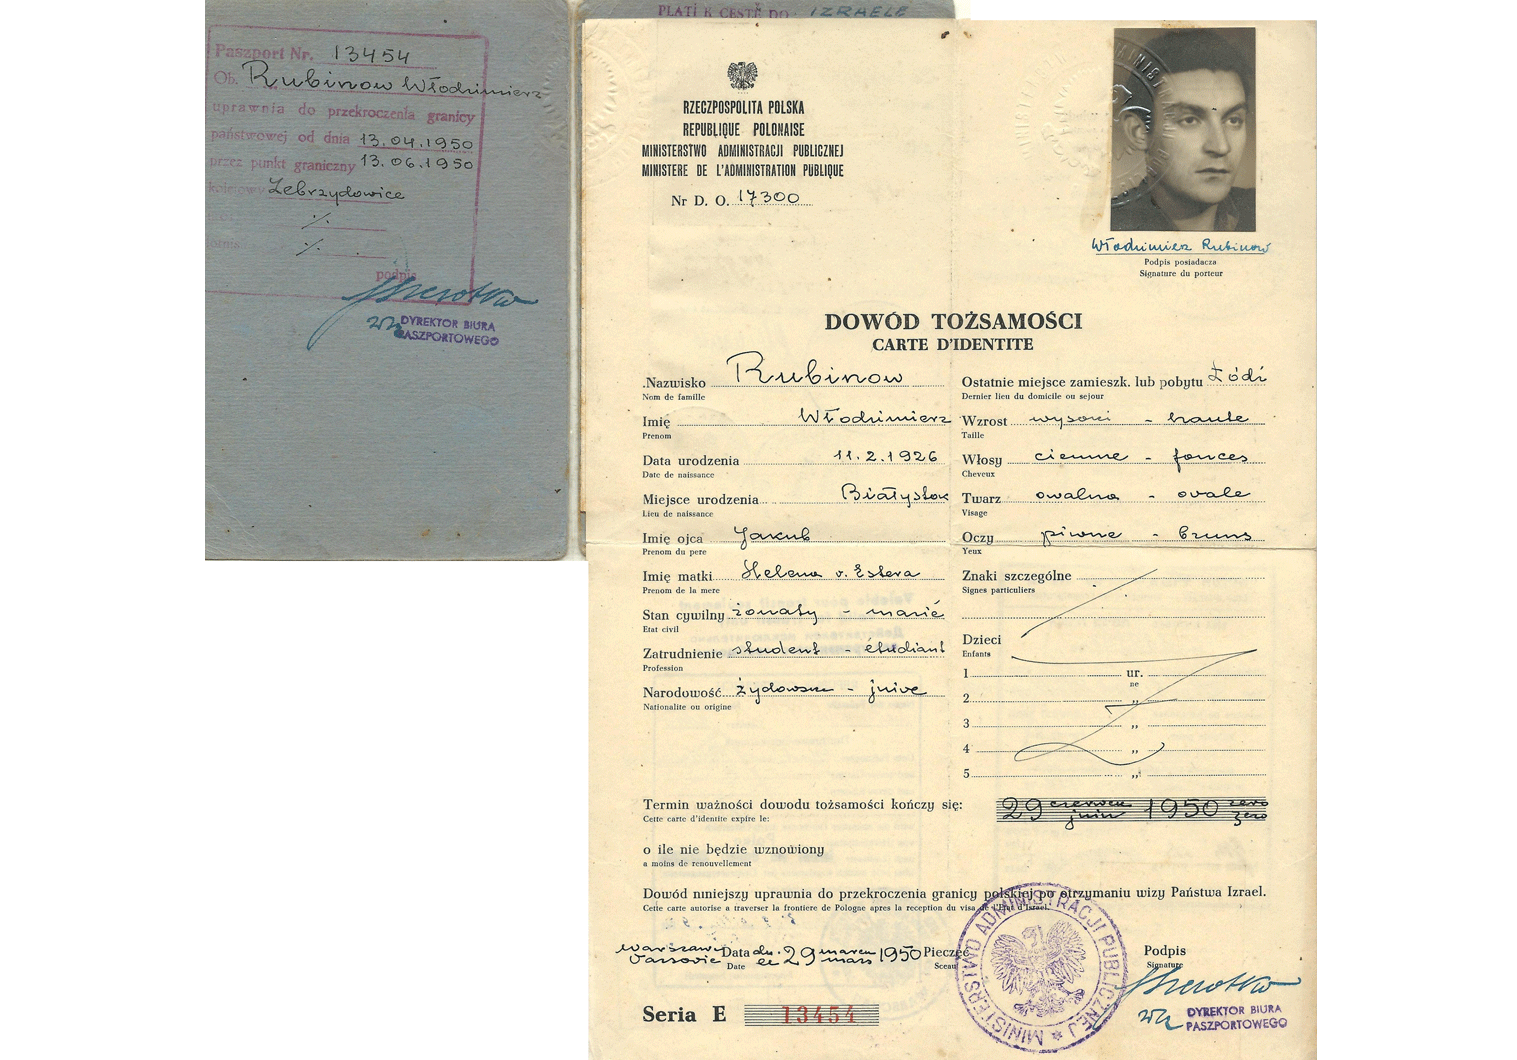 1950 Polish Jewish travel identity document